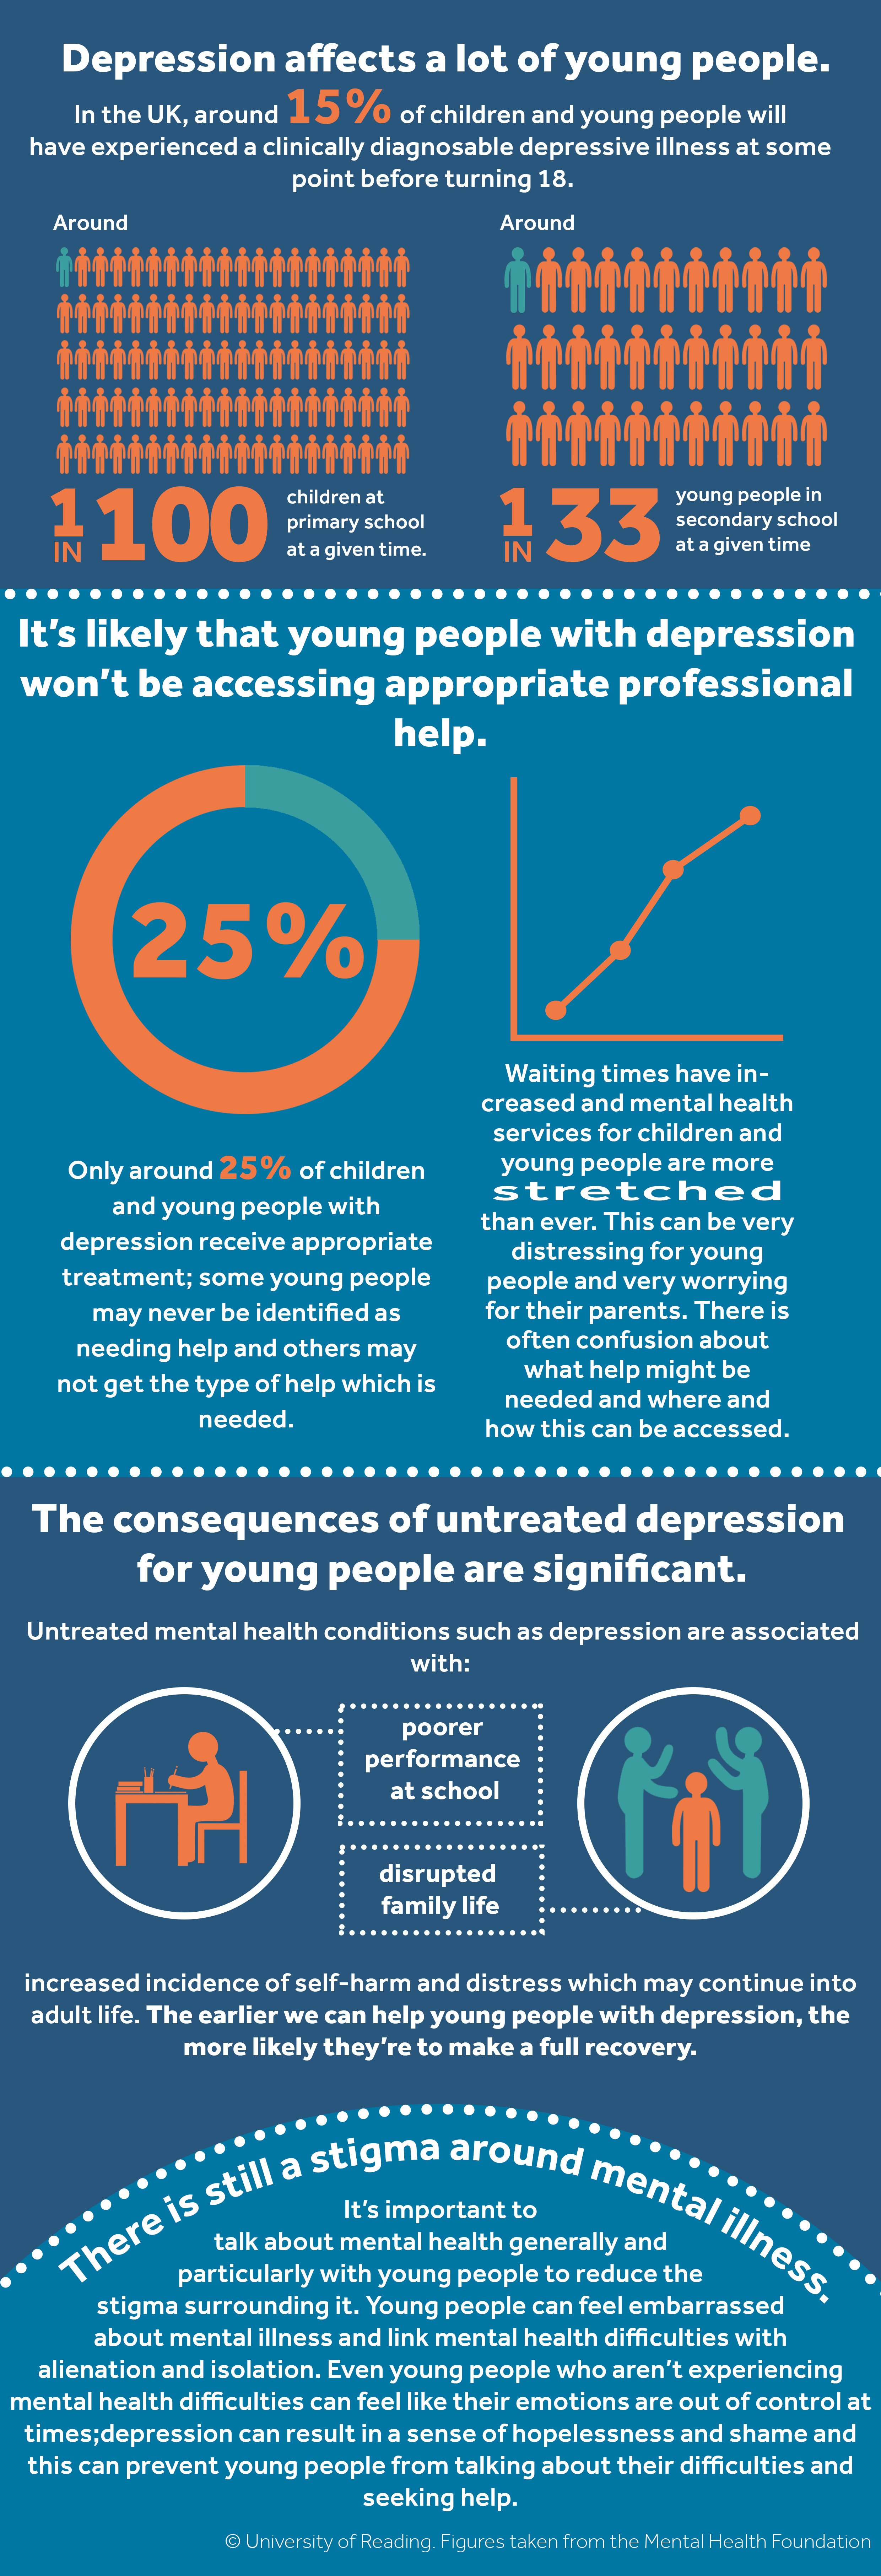 **Depression affects a lot of young people.** In the UK, around 15% of children and young people will have experienced a clinically diagnosable depressive illness at some point before turning 18 (around 1 in 100 children at primary school and 1 in 33 young people in secondary school at a given time). **It's likely that young people with depression won't be accessing appropriate professional help.** Only around 25% of children and young people with depression receive appropriate treatment; some young people may never be identified as needing help and others may not get the type of help which is needed. Waiting times have increased and mental health services for children and young people are more stretched than ever. This can be very distressing for young people and very worrying for their parents. There is often confusion about what help might be needed and where and how this can be accessed. **The consequences of untreated depression for young people are significant.** Untreated mental health conditions such as depression are associated with poorer performance at school, disrupted family life, increased incidence of self-harm and distress which may continue into adult life. The earlier we can help young people with depression, the more likely they are to make a full recovery. **There is still a stigma around mental illness.** It's important to talk about mental health generally and particularly with young people to reduce the stigma surrounding it. Young people can feel embarrassed about mental illness and link mental health difficulties with alienation and isolation. Even young people who aren't experiencing mental health difficulties can feel like their emotions are out of control at times; depression can result in a sense of hopelessness and shame and this can prevent young people from talking about their difficulties and seeking help. We're extremely keen to develop this programme to increase public knowledge around depression in young people, and we wanted to p